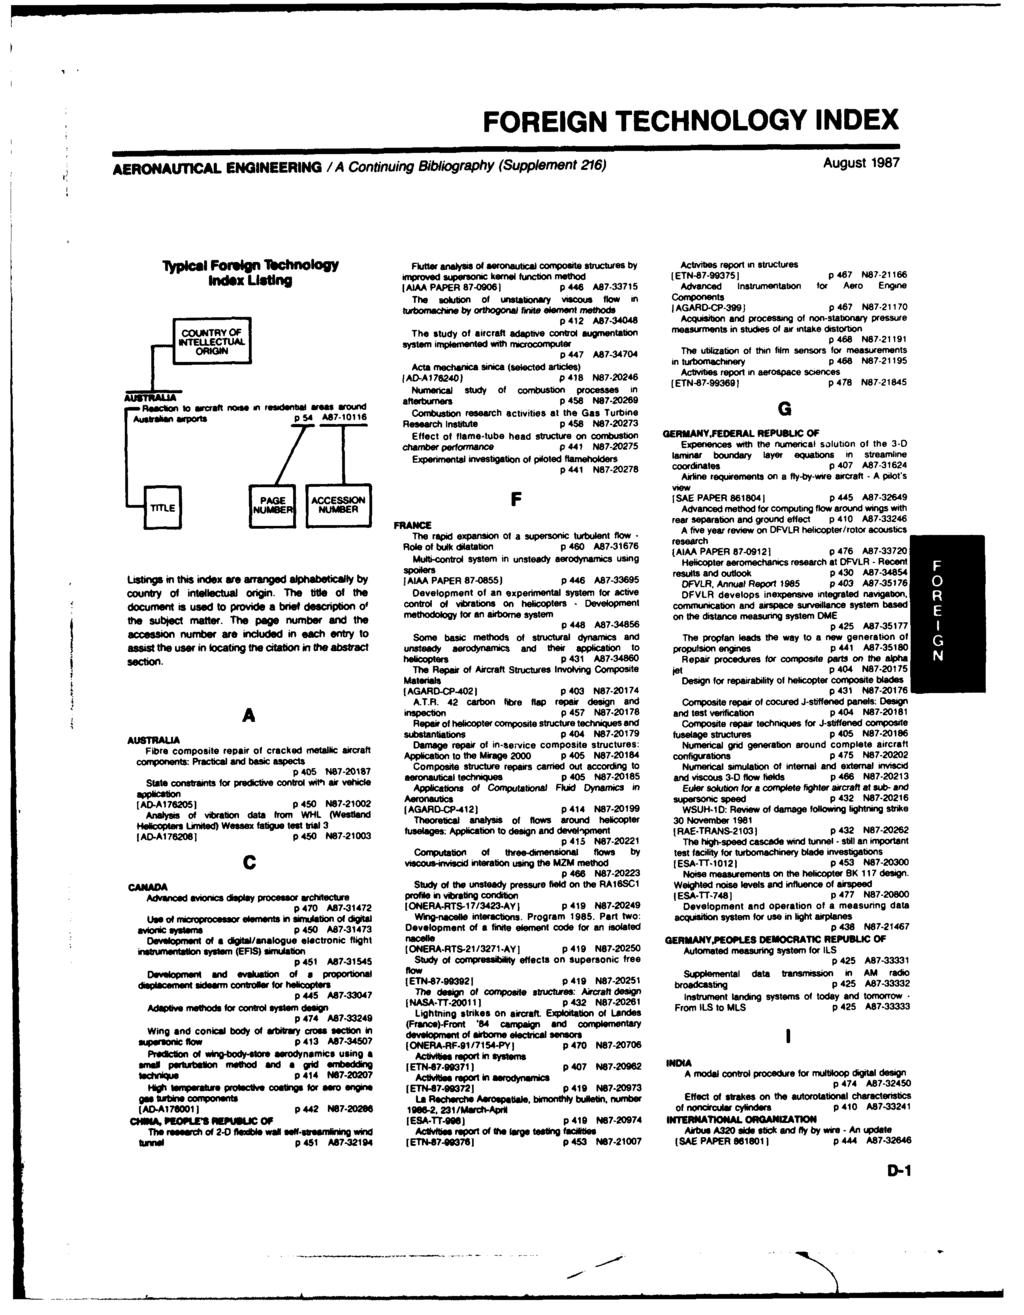 FOREIGN TECHNOLOGY INDEX AERONAUTICAL ENGINEERING /A Continuing Bibliography (Supplement 216) August 1987 1Tjpfca FrIgu lbchnml y Flutter analysis of1 onautical composite stutrsby Activities report